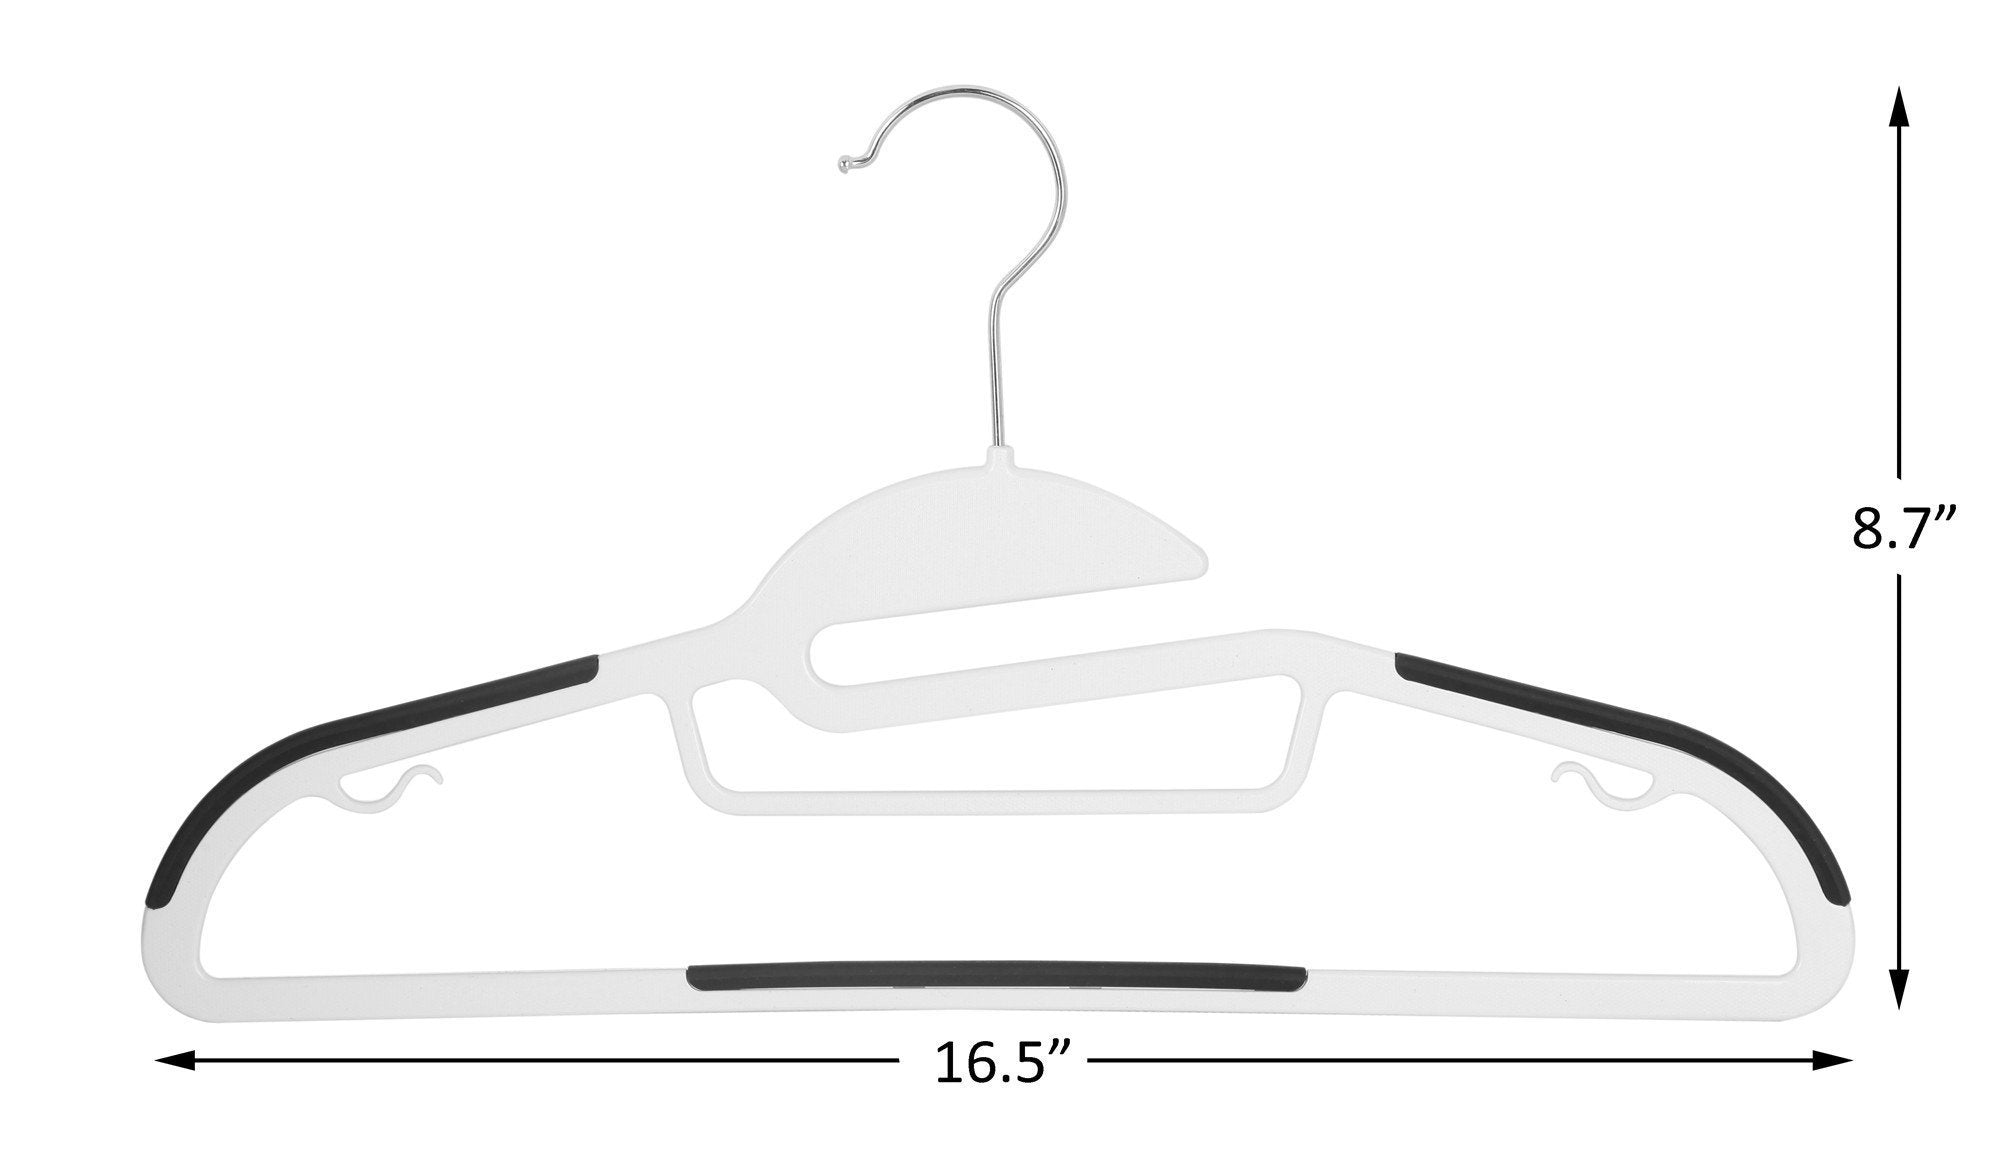 Amazon finnhomy heavy duty 50 pack plastic hangers durable clothes hangers with non slip pads space saving easy slide organizer for bedroom closet great for shirts pants white